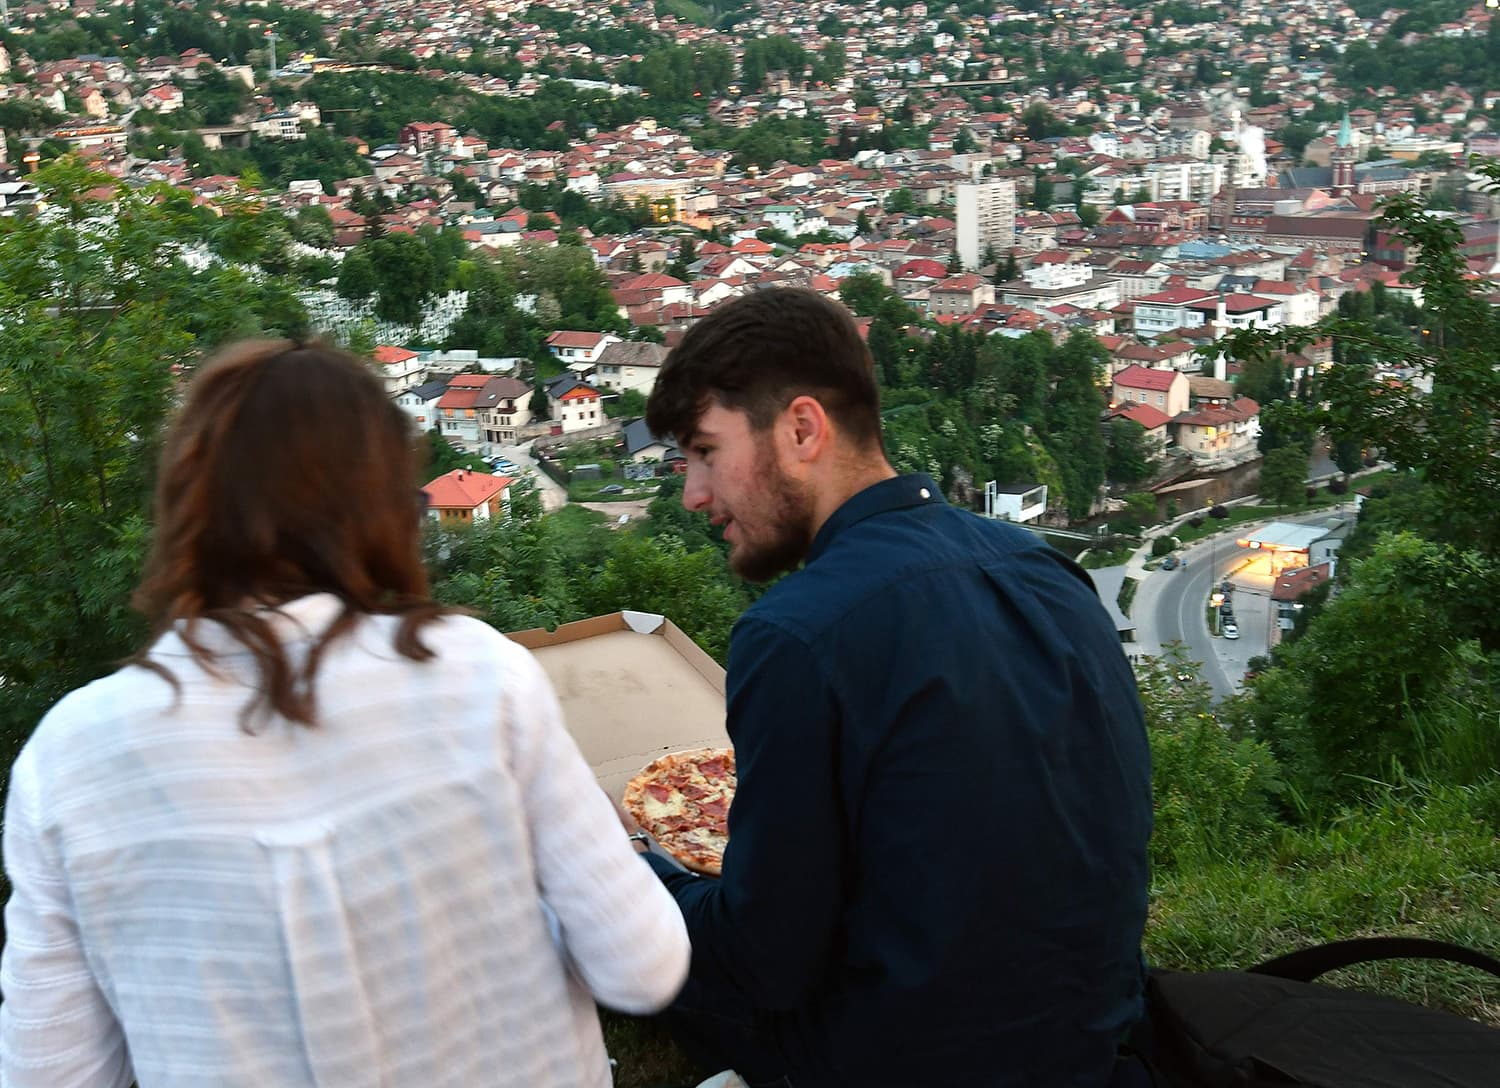 A Bosnian Muslim couple sits on the ground overlooking the city and share a pizza, at the end of daily fasting on the first day of the holly month of Ramazan, in Sarajevo on May 16. — AFP